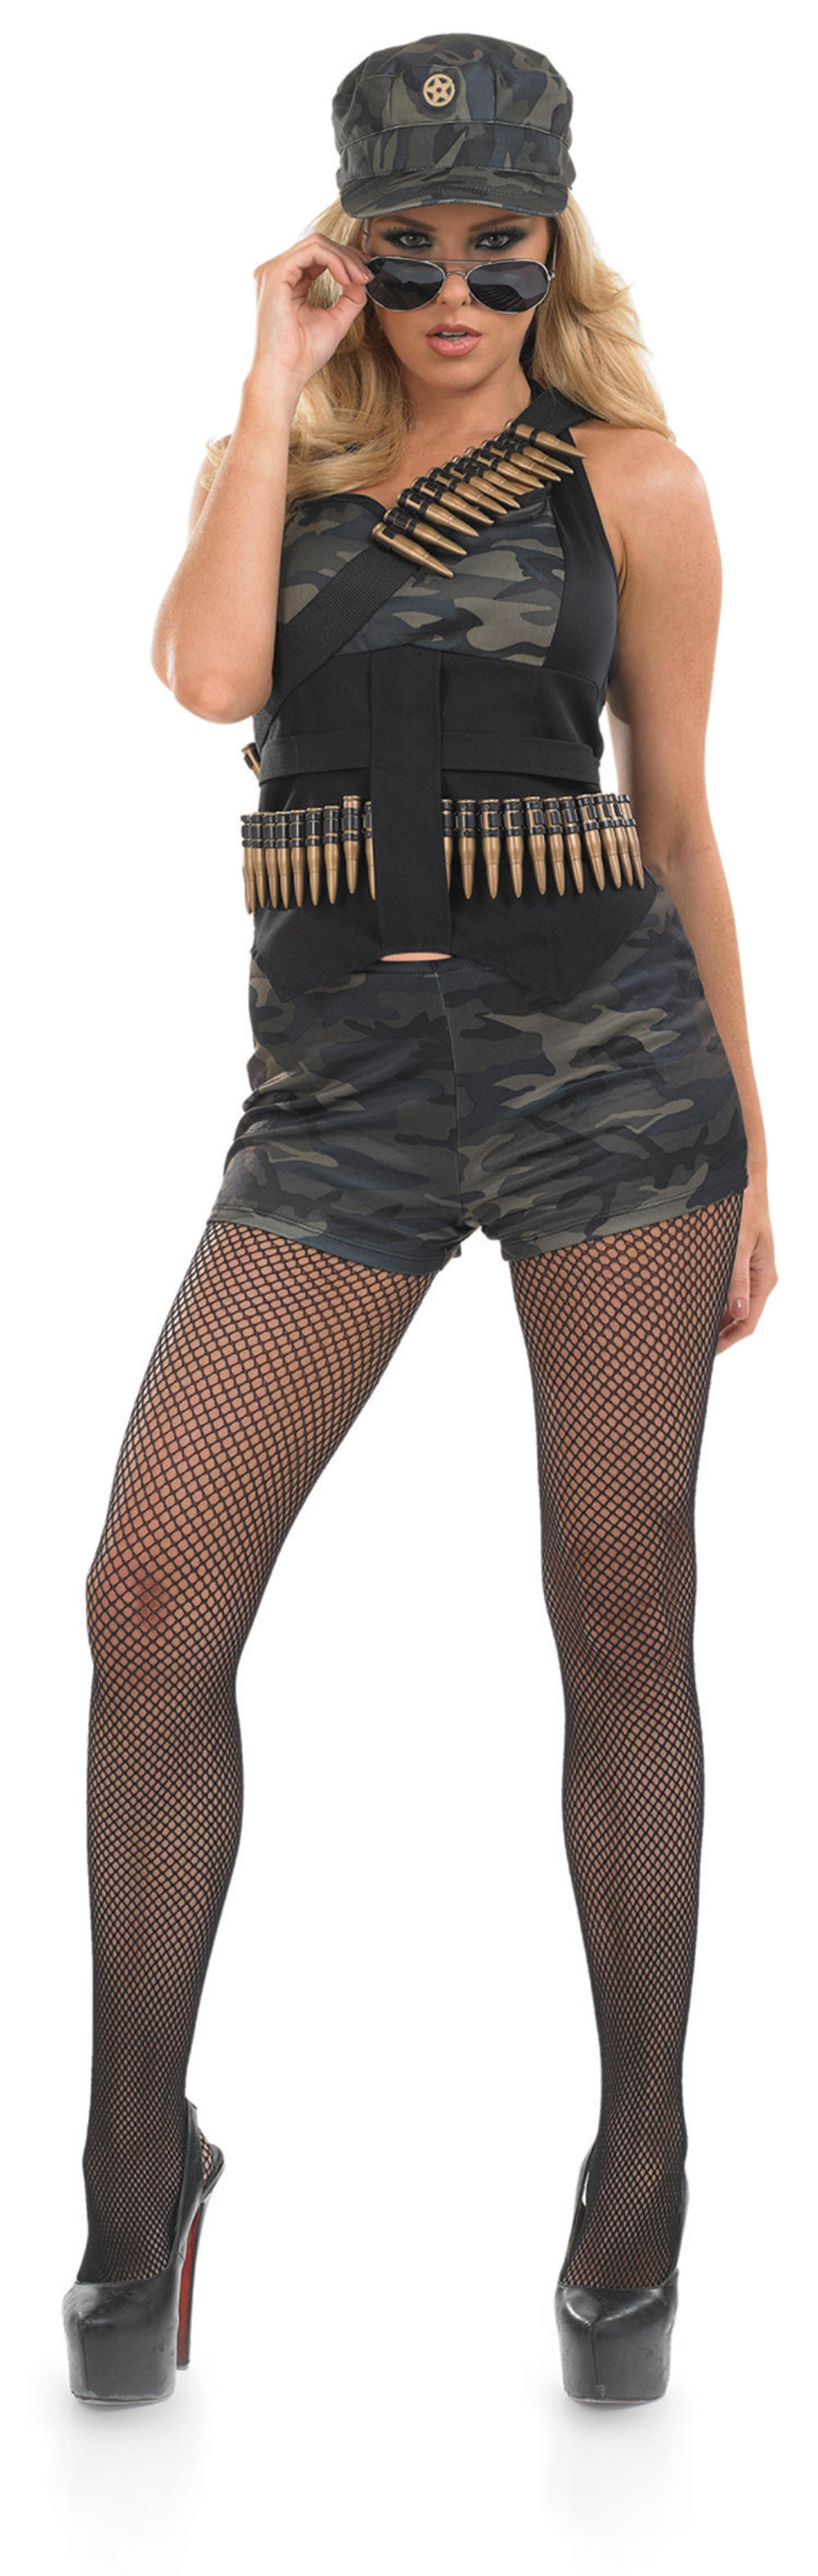 Sexy Hot Pants Army Ladies Fancy Dress Military Camo Uniform Adults Sexy Costume